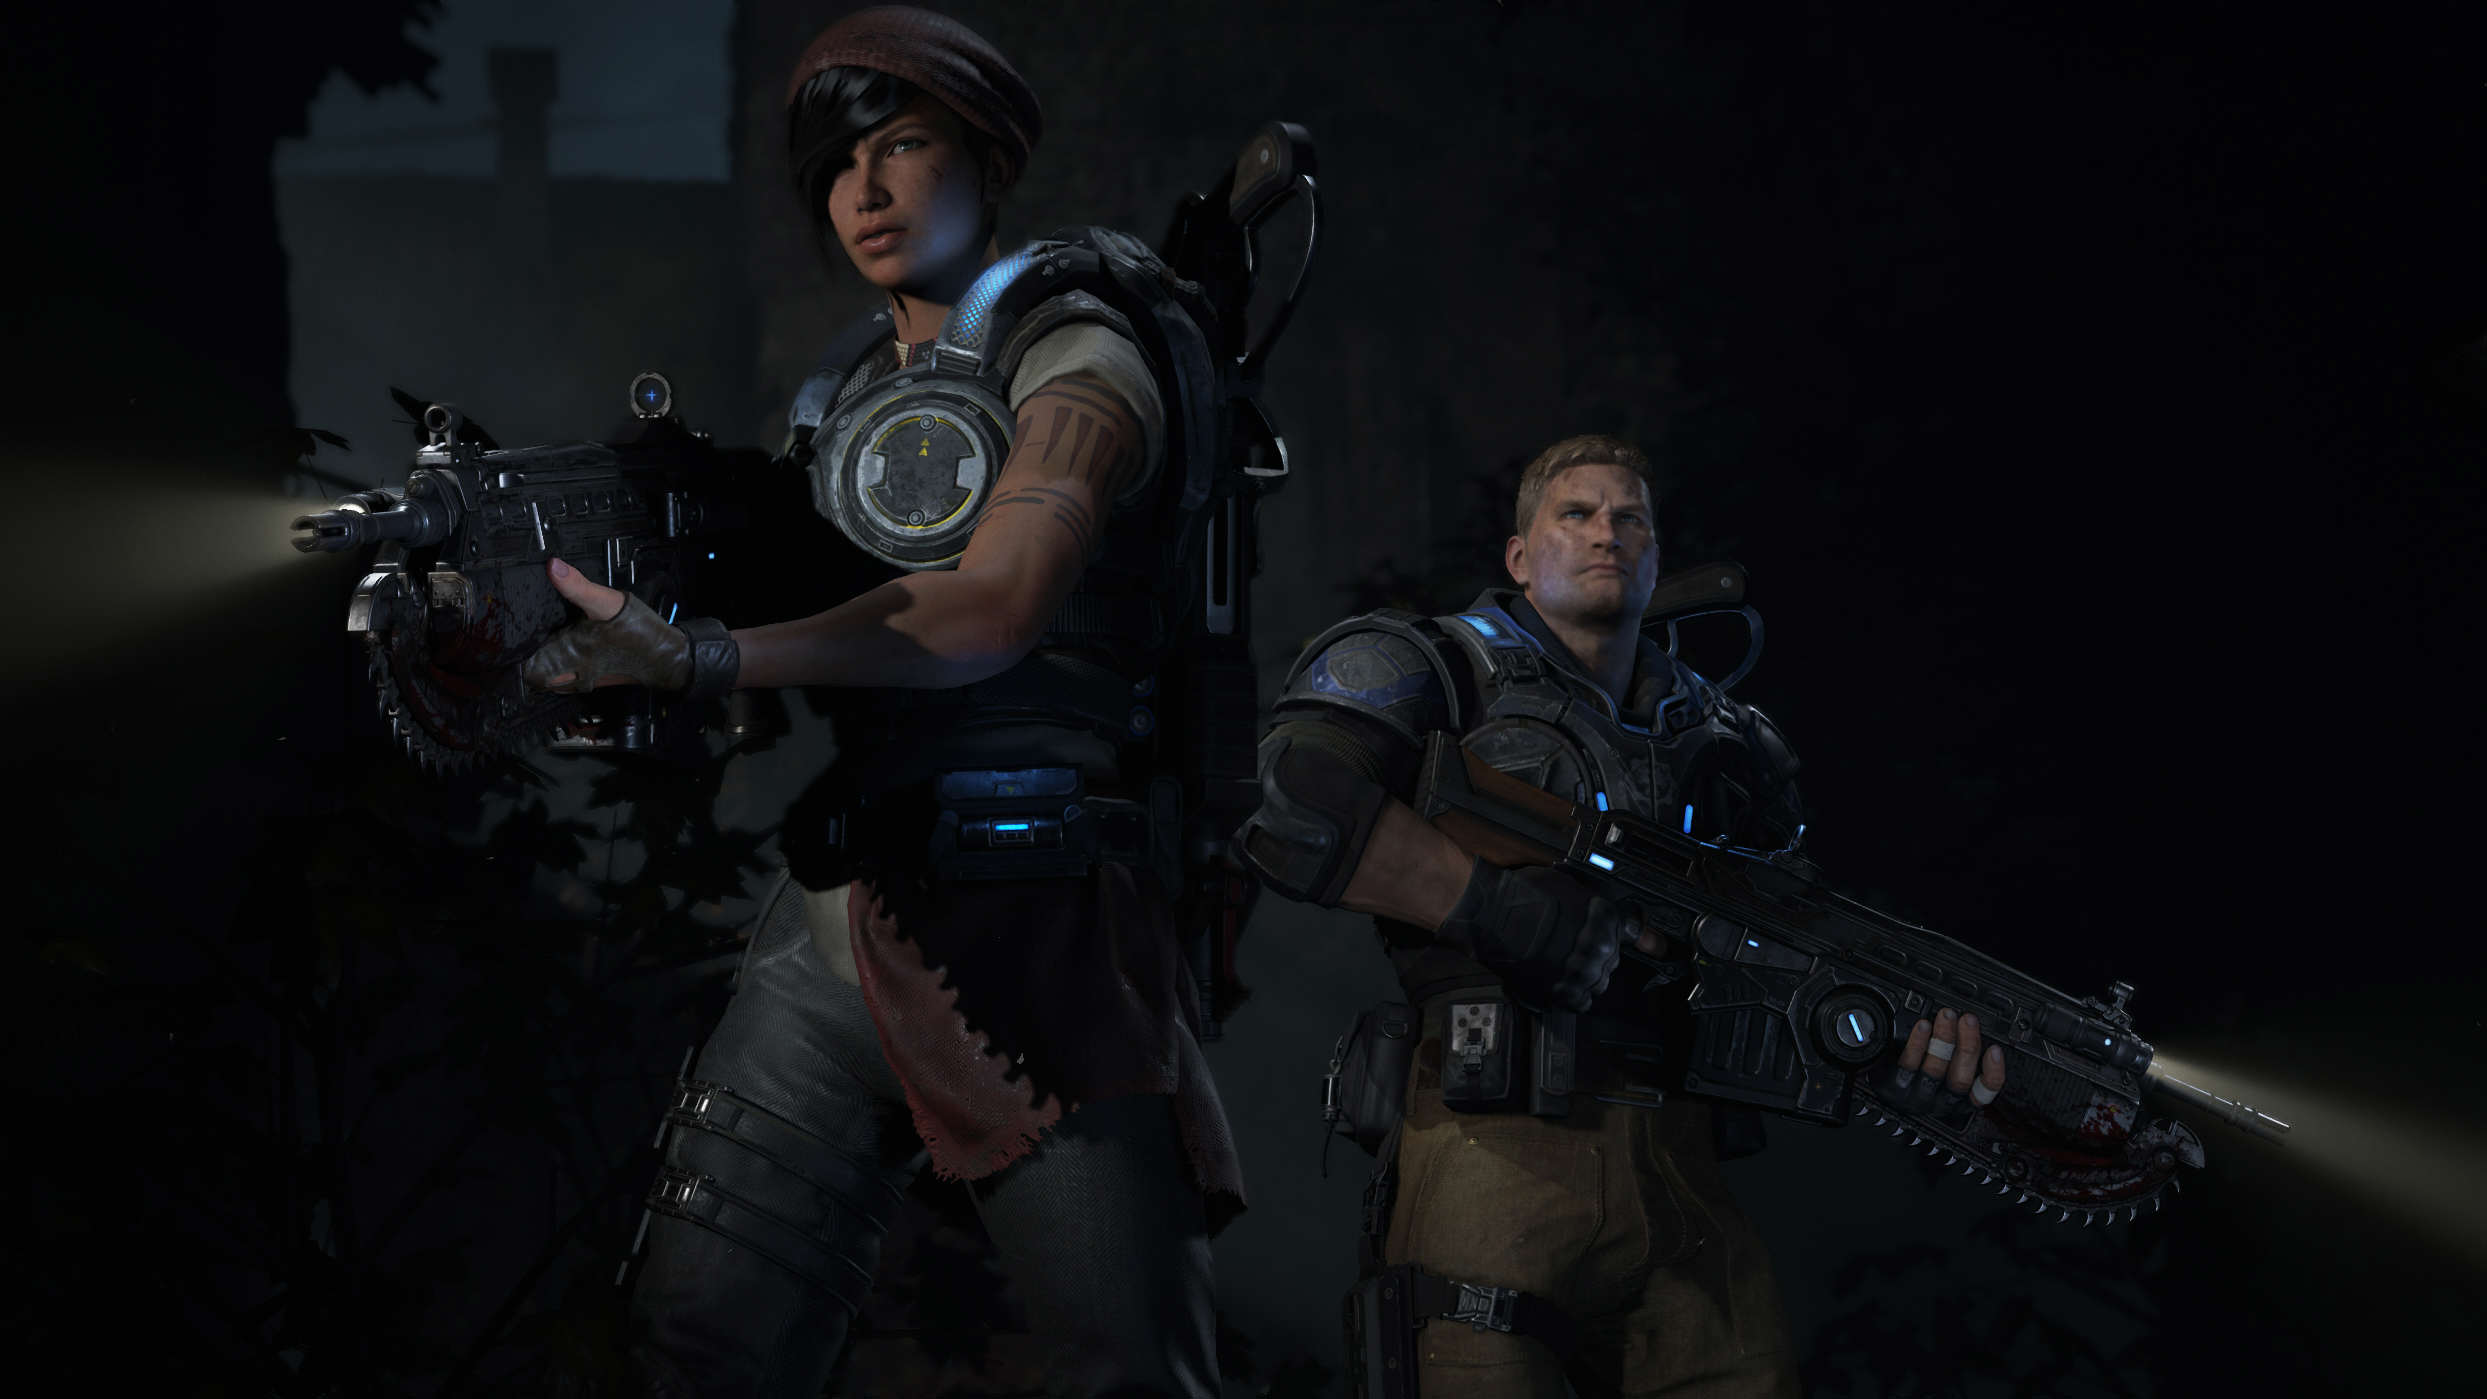 GearsOfWar4 1 jpg Gears Of War 4 Cast Revealed, With A Nice Surprise For Fans